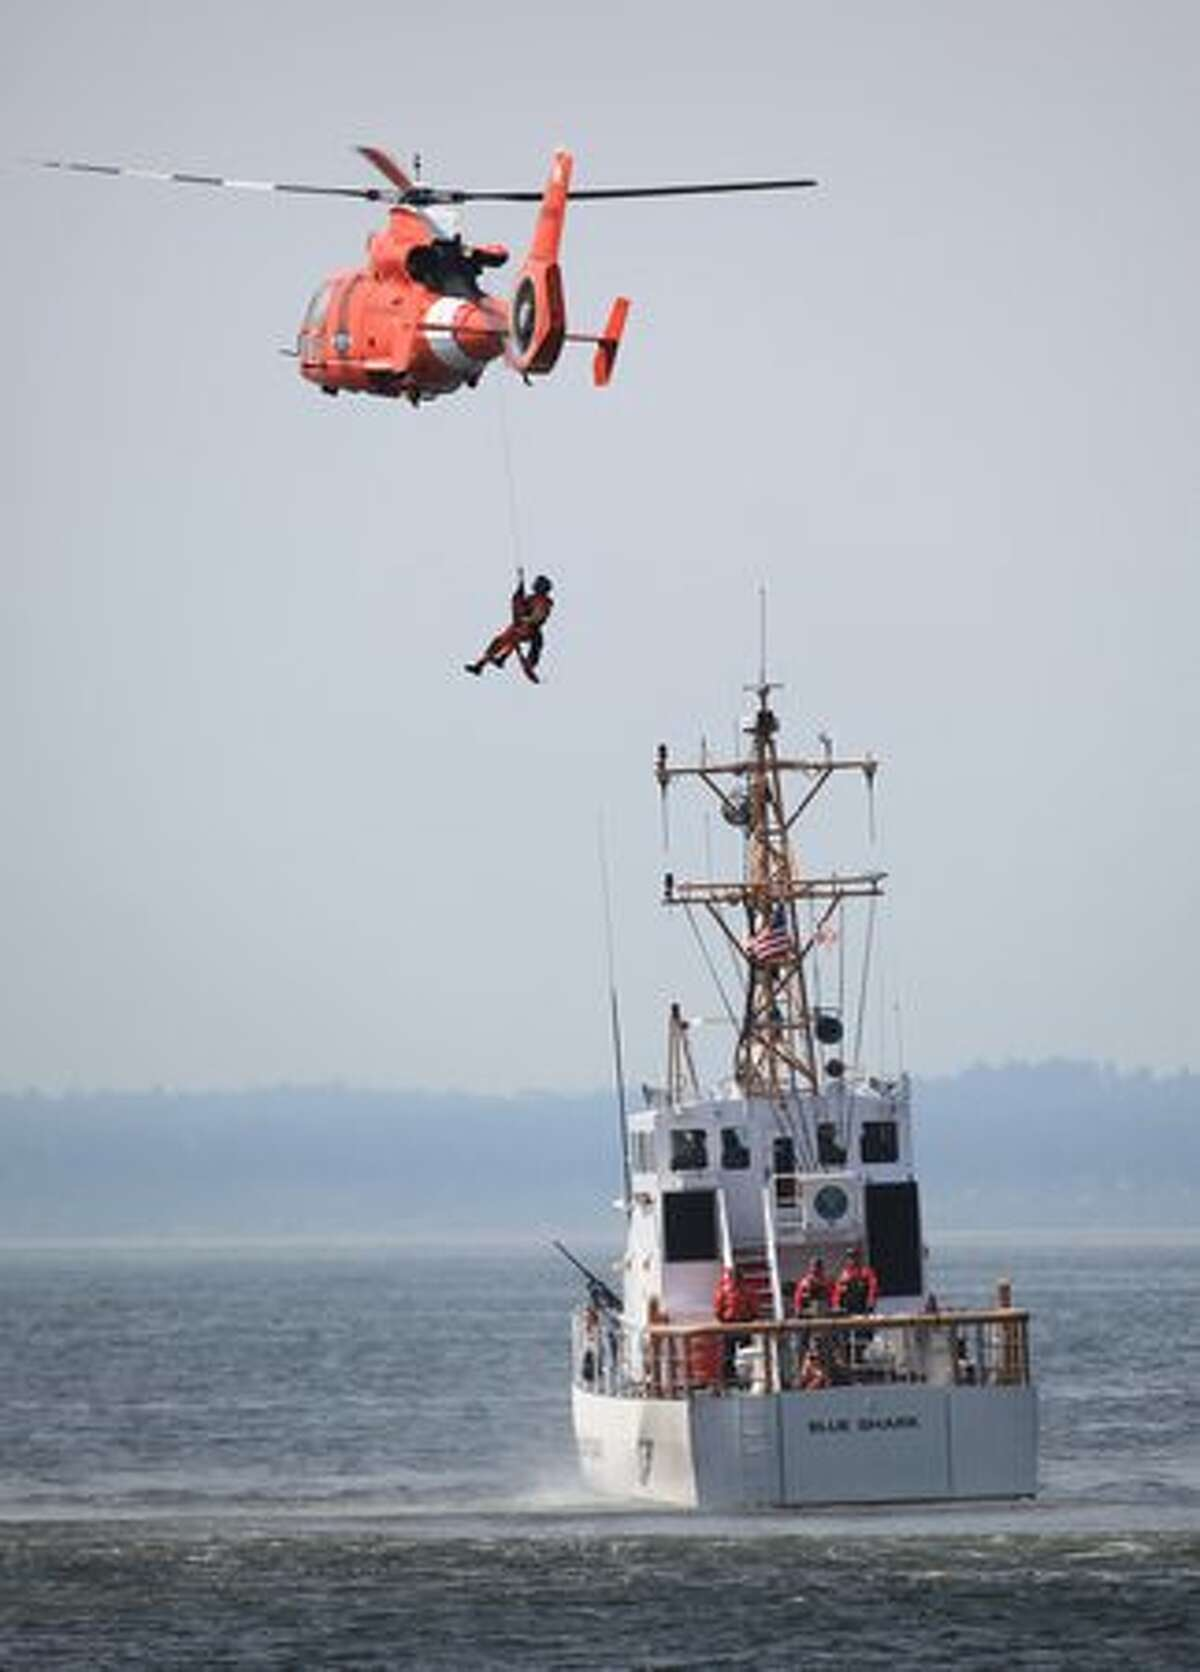 A U.S. Coast Guardsmen performs an exercise during U.S. Navy Fleet Week's Parade of Ships in Elliott Bay along the Seattle waterfront on Wednesday August 4, 2010. The parade is part of Seattle's annual Seafair celebration.